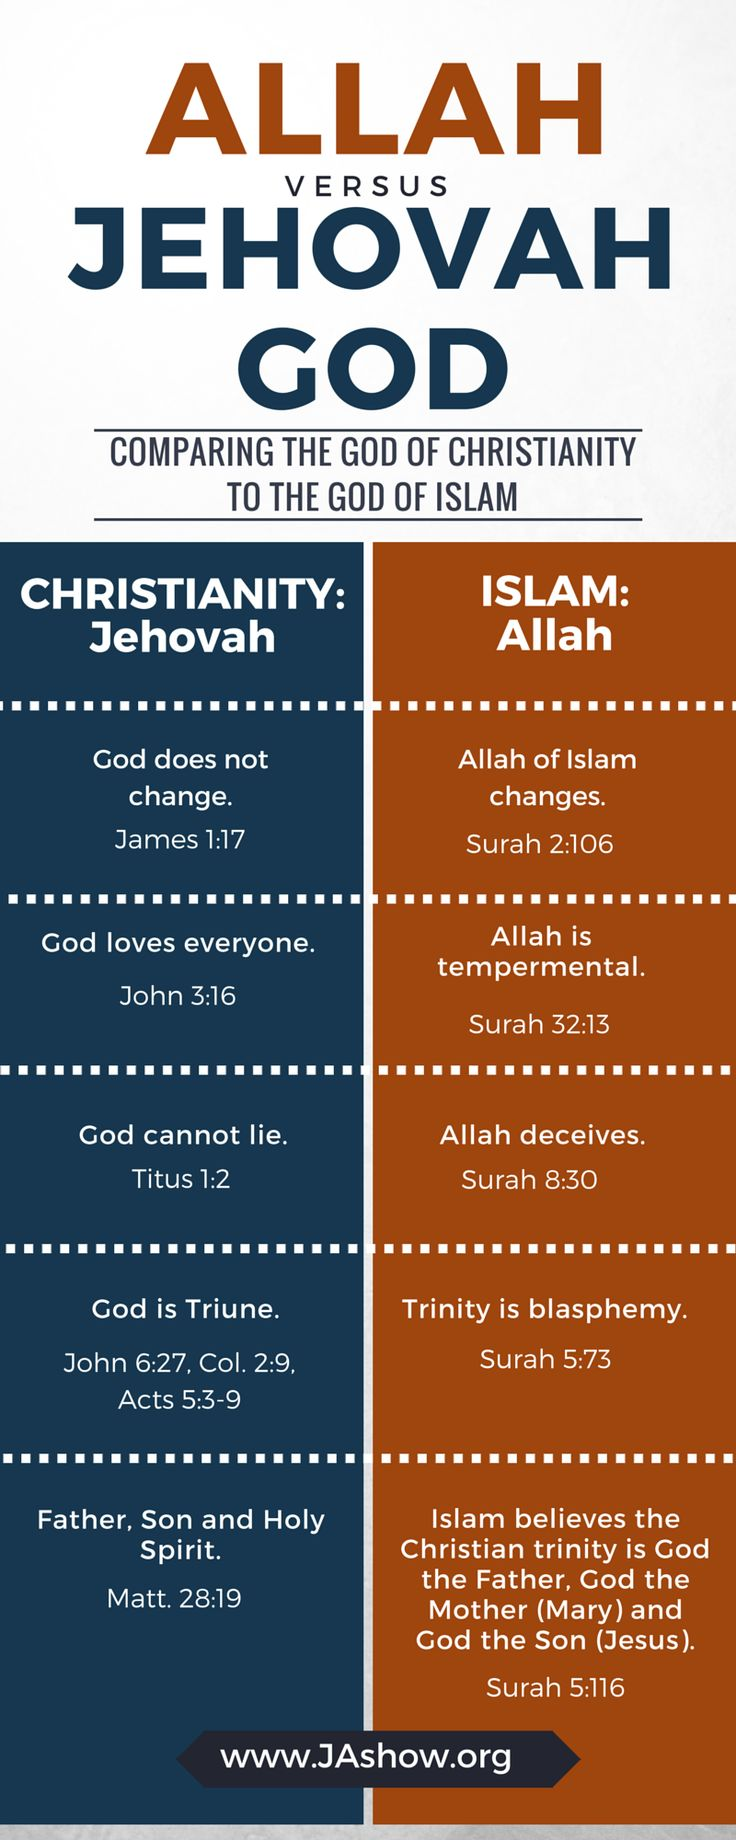 islam versus christianity which is true Thus, theological differences that exist in direct contrast with one another  between islam and christianity cannot both be true in the same sense this  article.